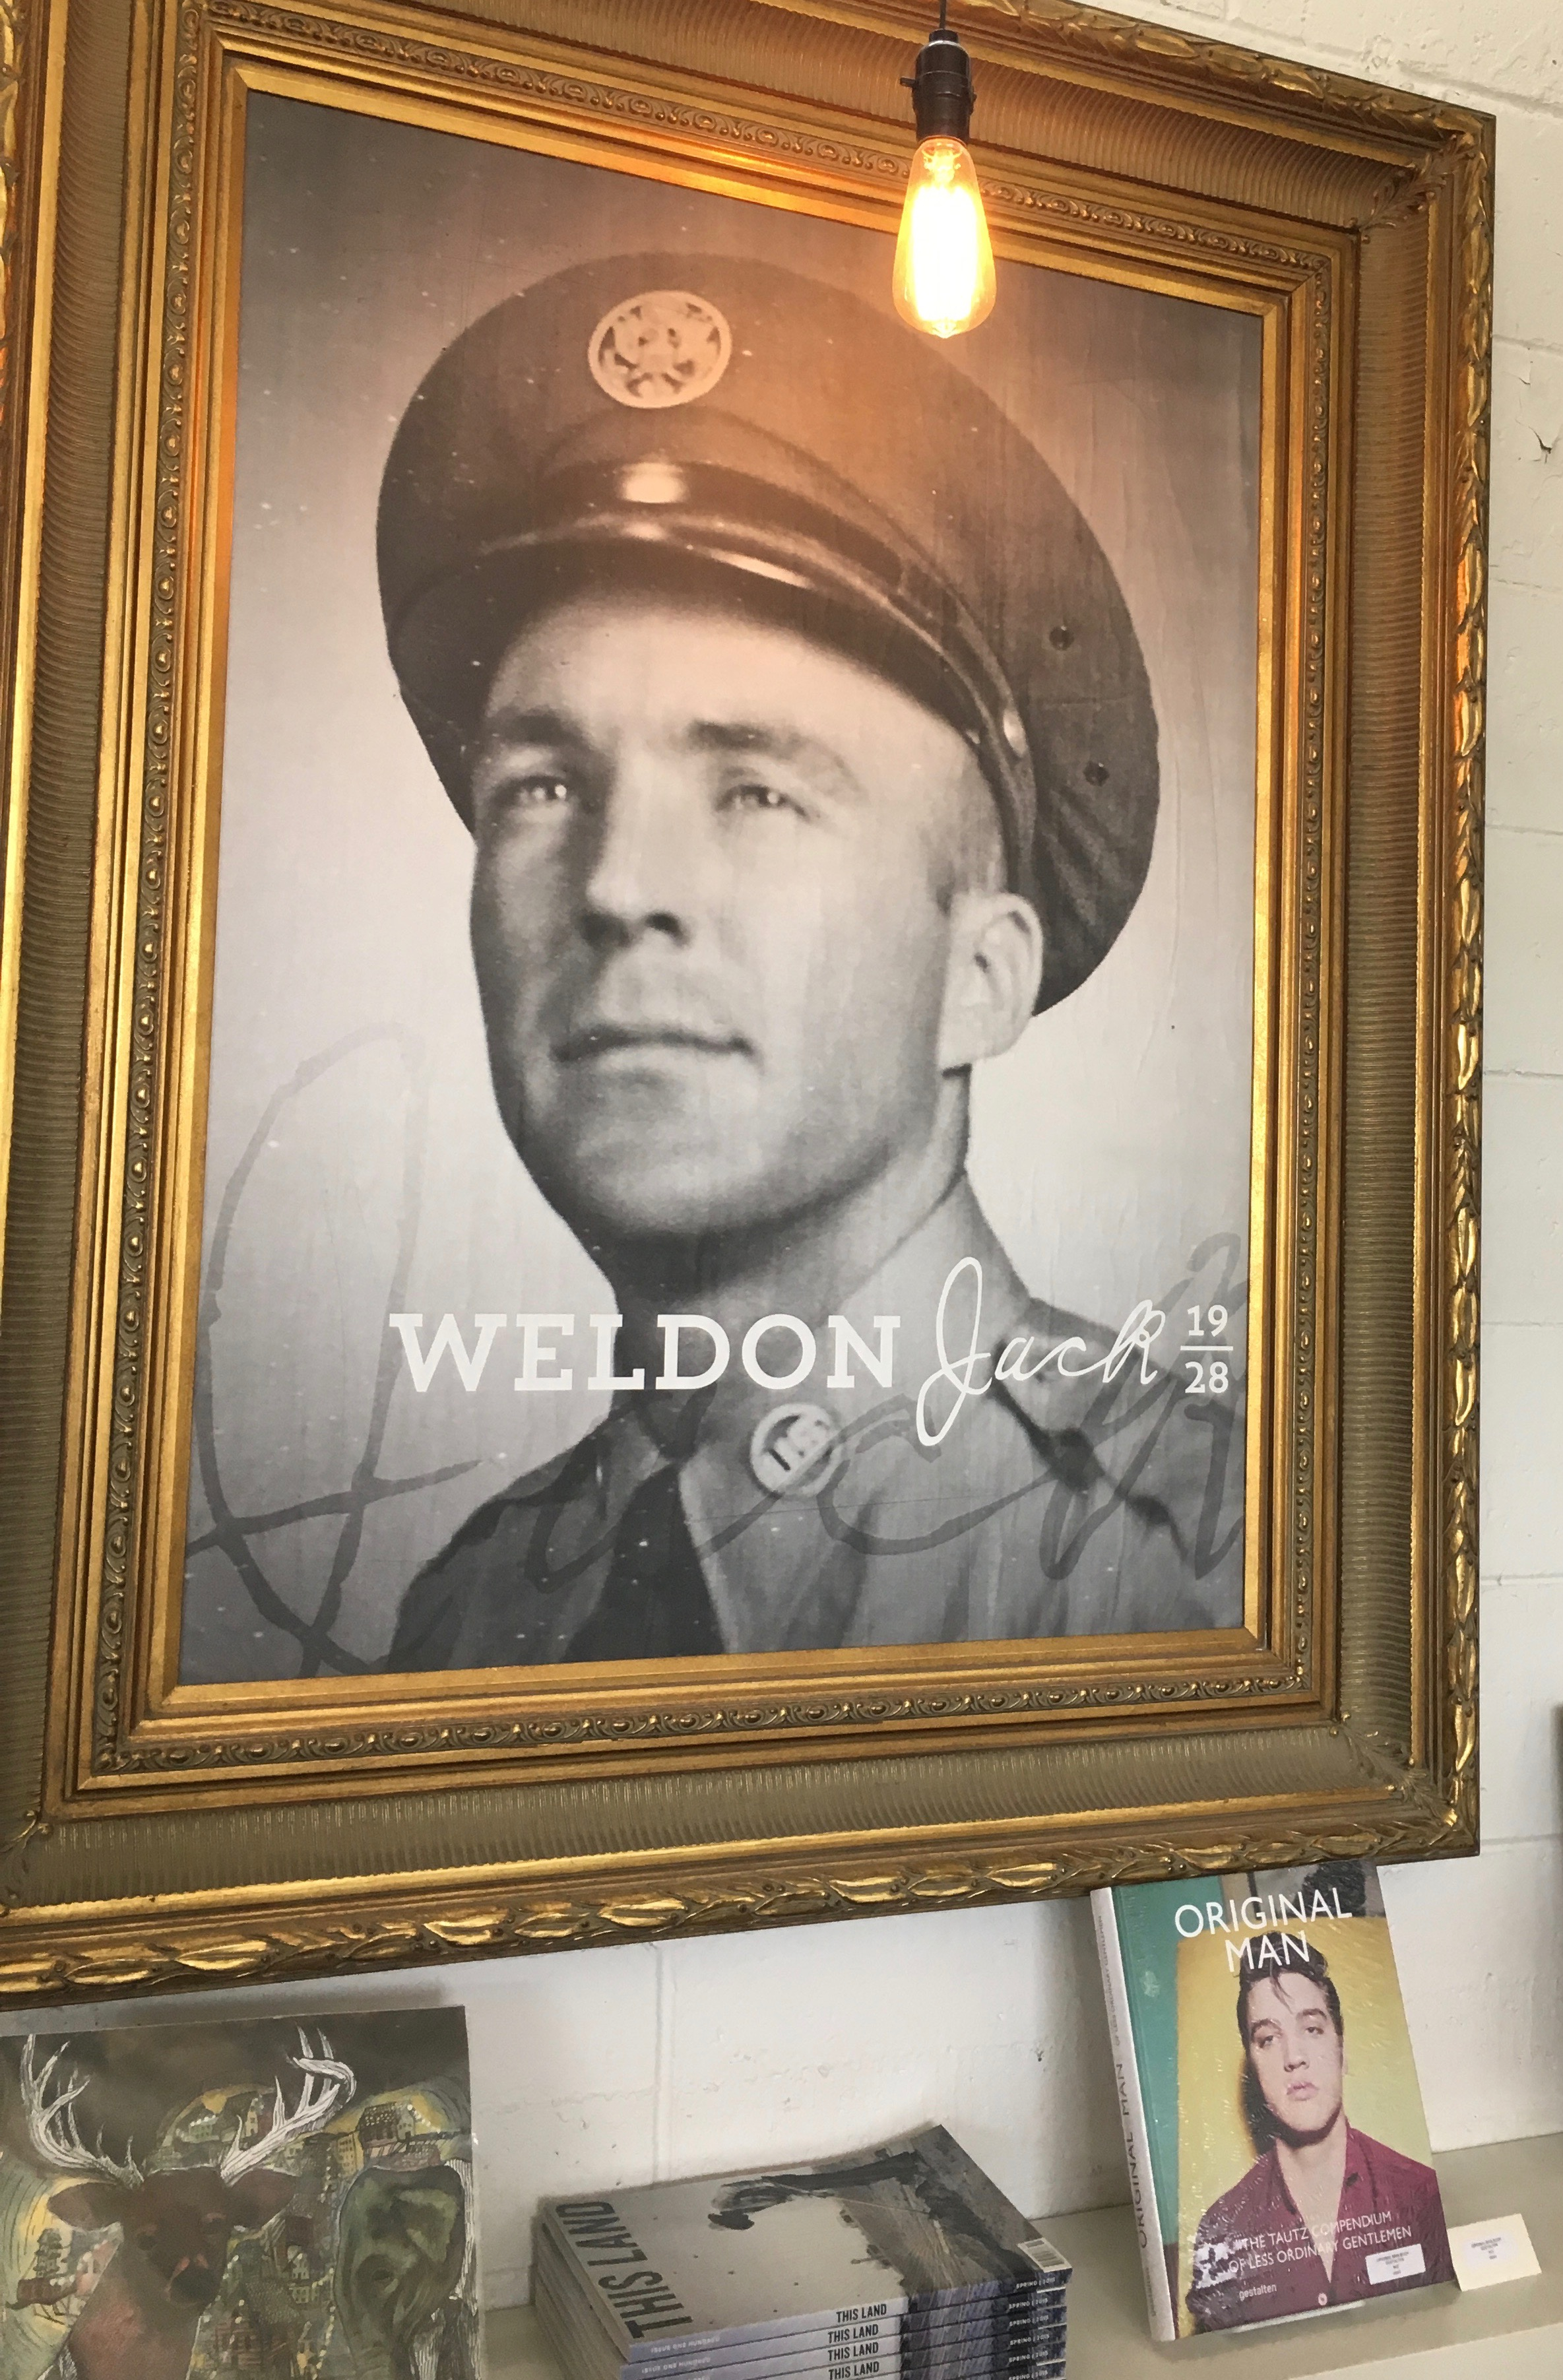 Jerrod named his shop after his grandfather, Jack Weldon Smith